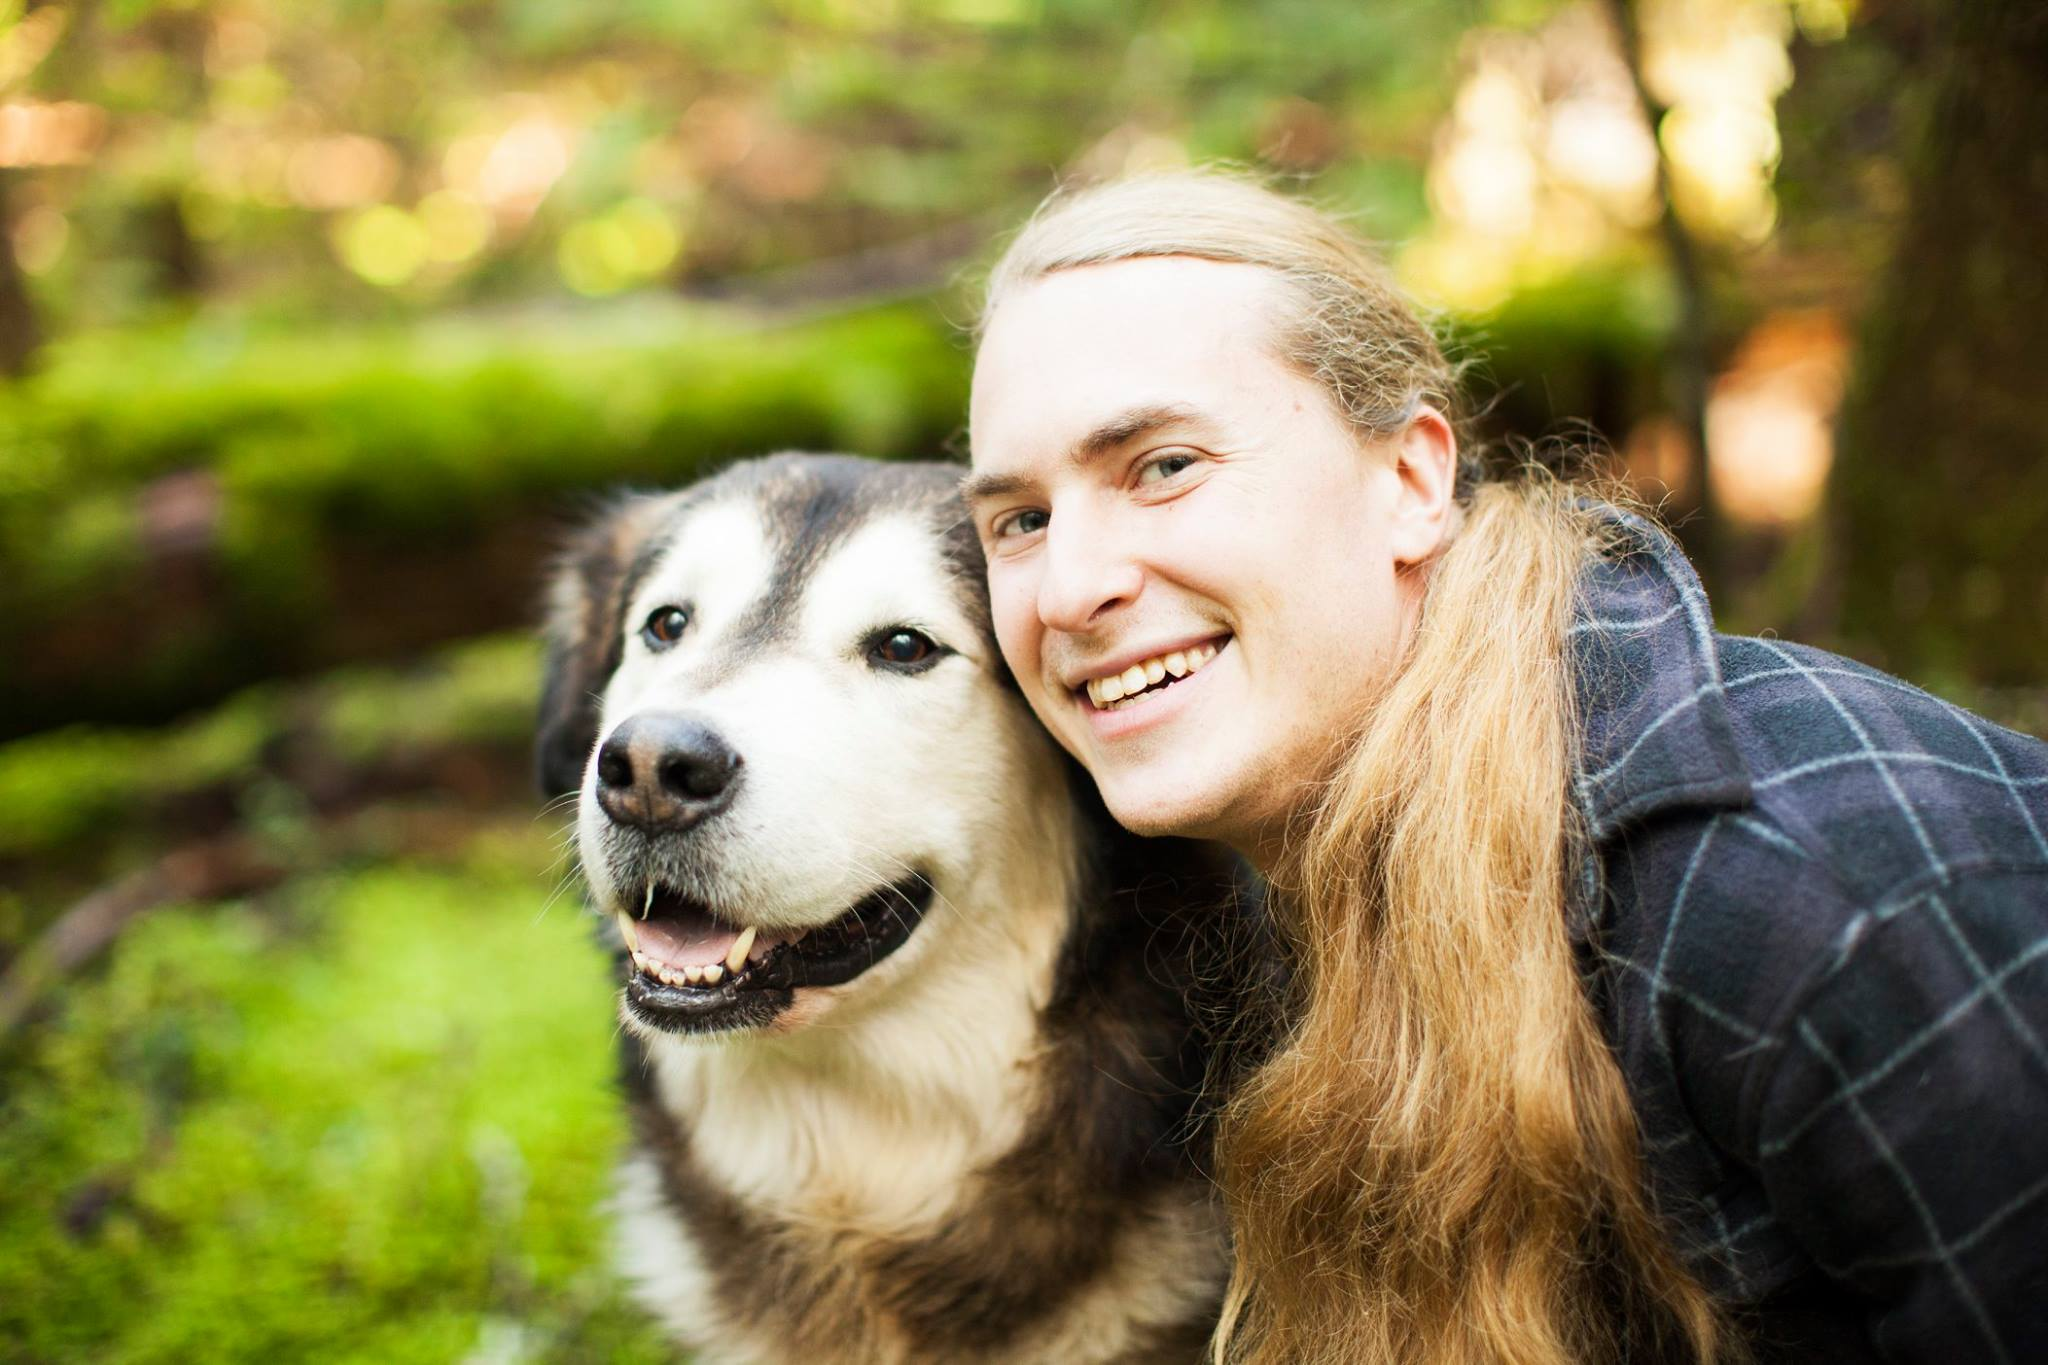 Pictured above is Aaron. We dated briefly for a few months while Joel was in China. He helped me to realize so much about myself and we spent a lot of beautiful moments in the wilderness in Oregon. (Still friends with this person too because he's a great hooman being).